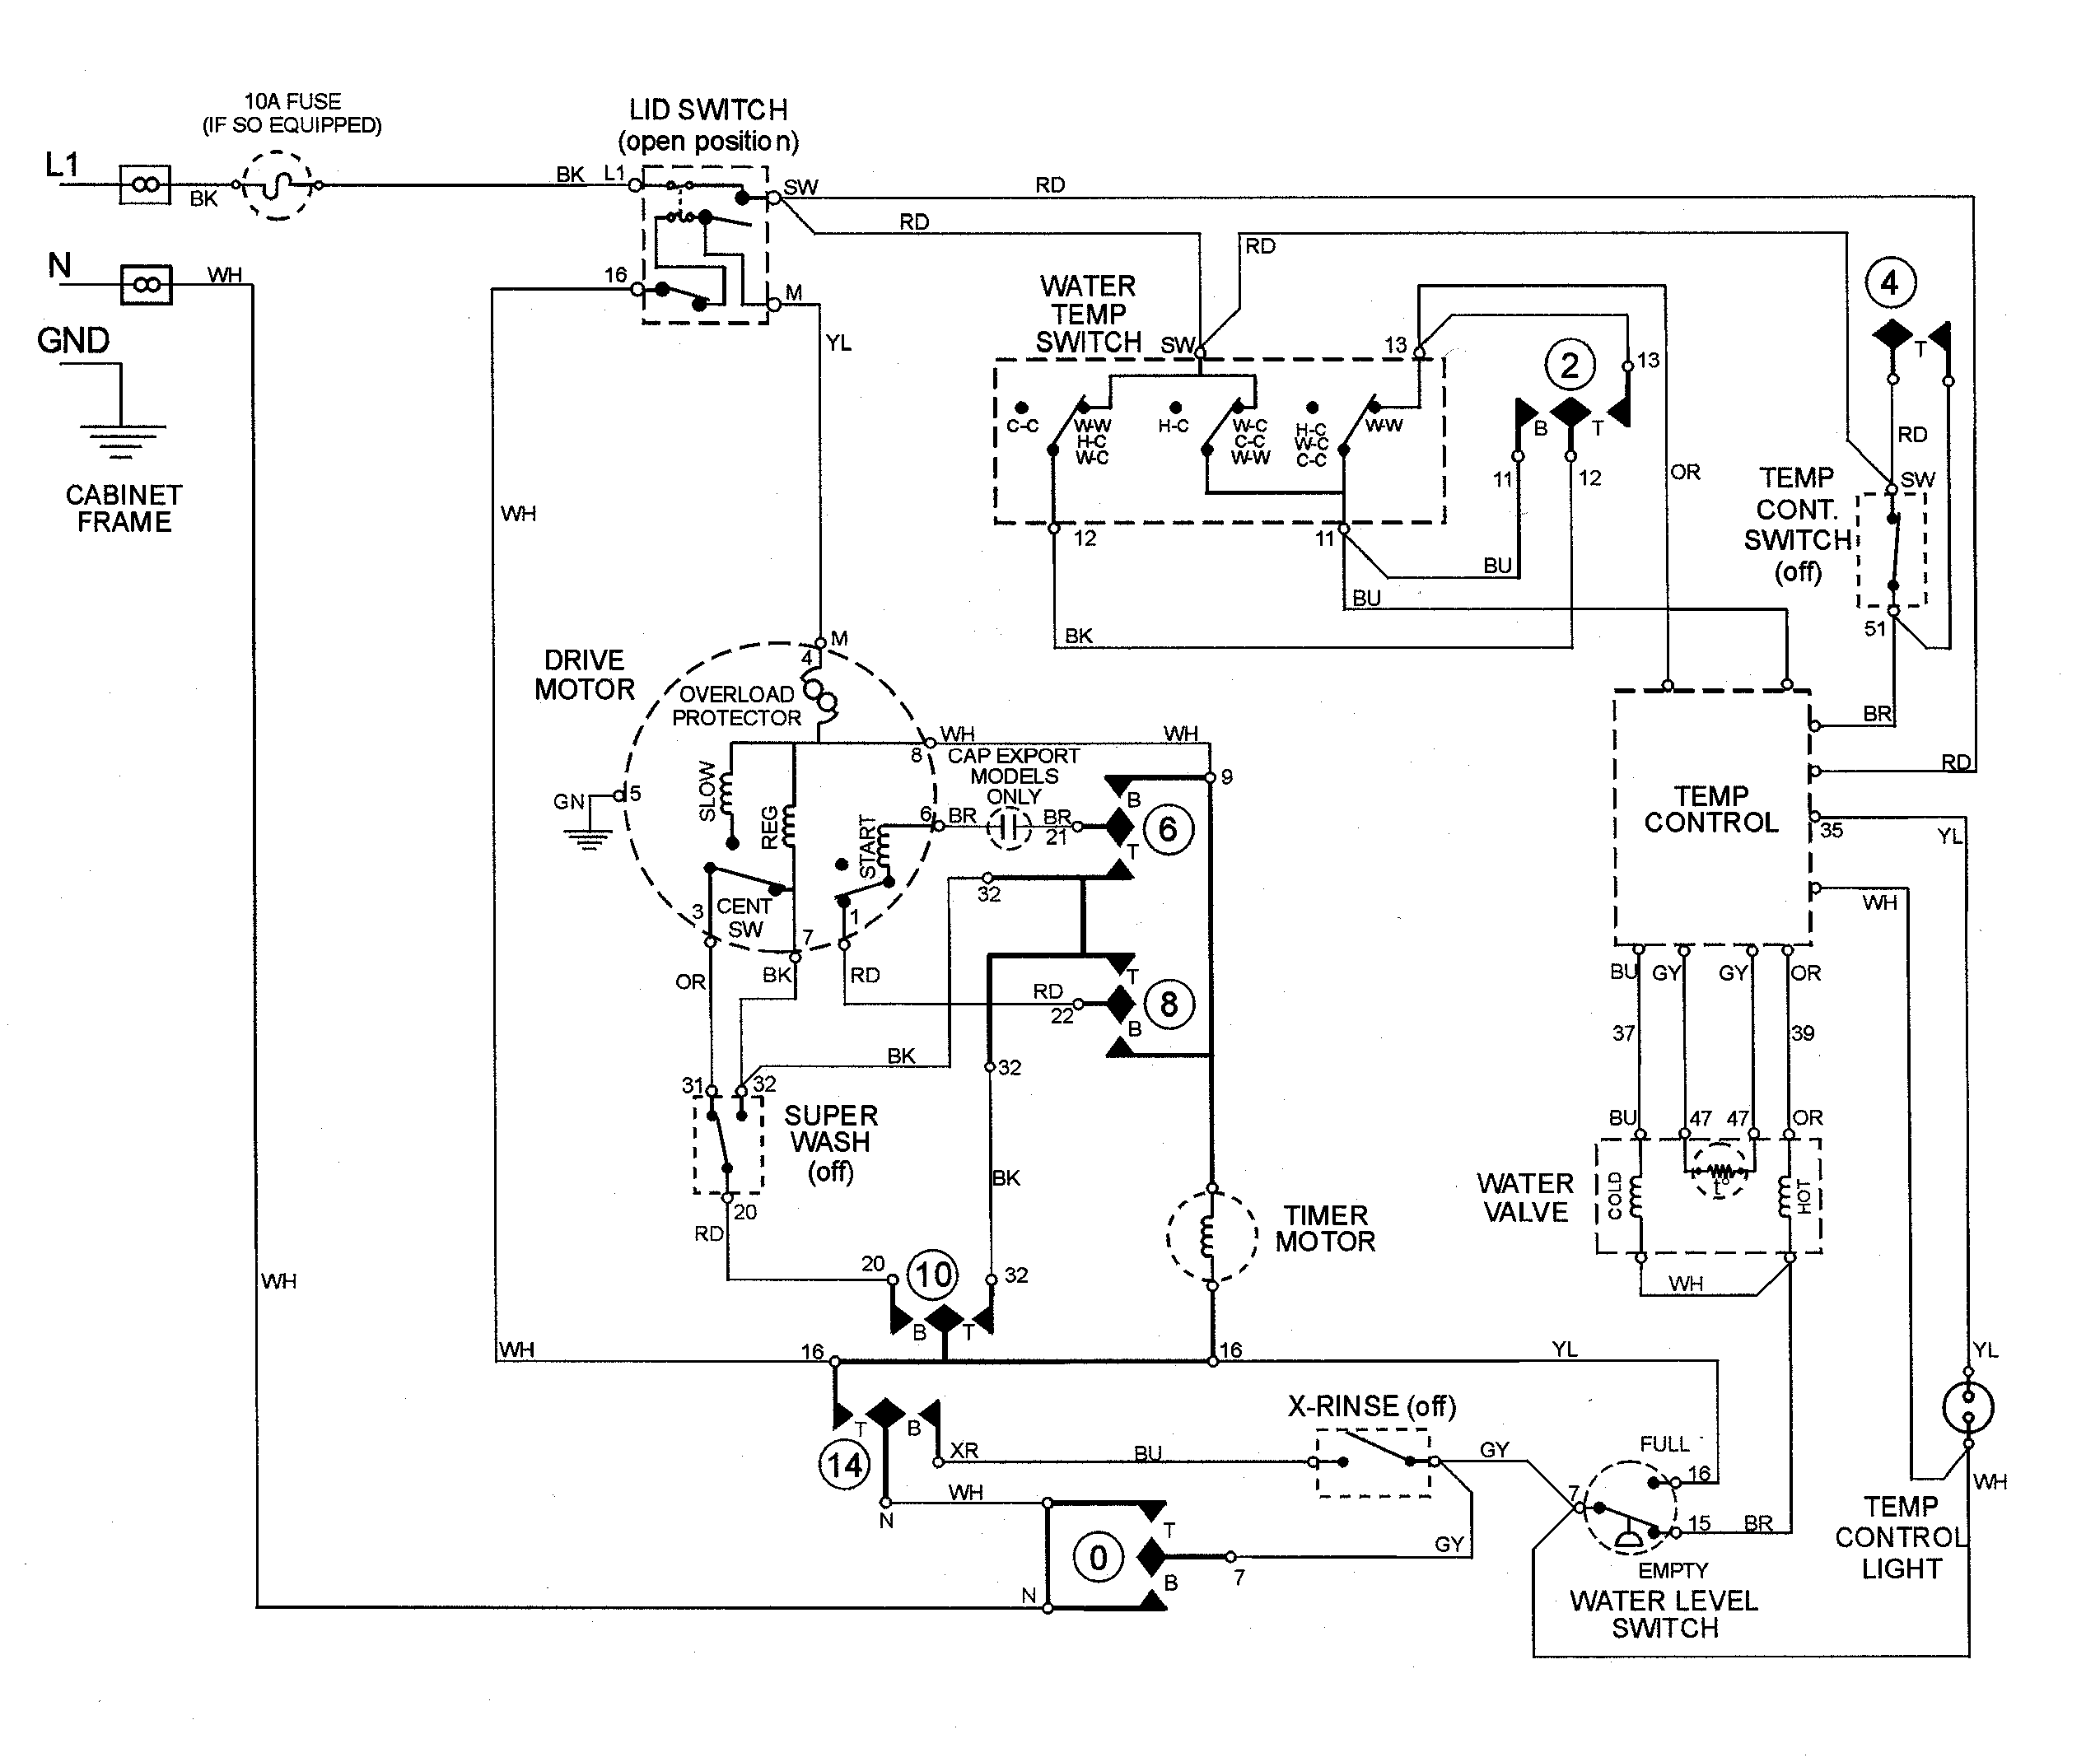 small resolution of ge electric motor diagram wiring diagram name ge motor diagram wiring diagram rows general electric motor